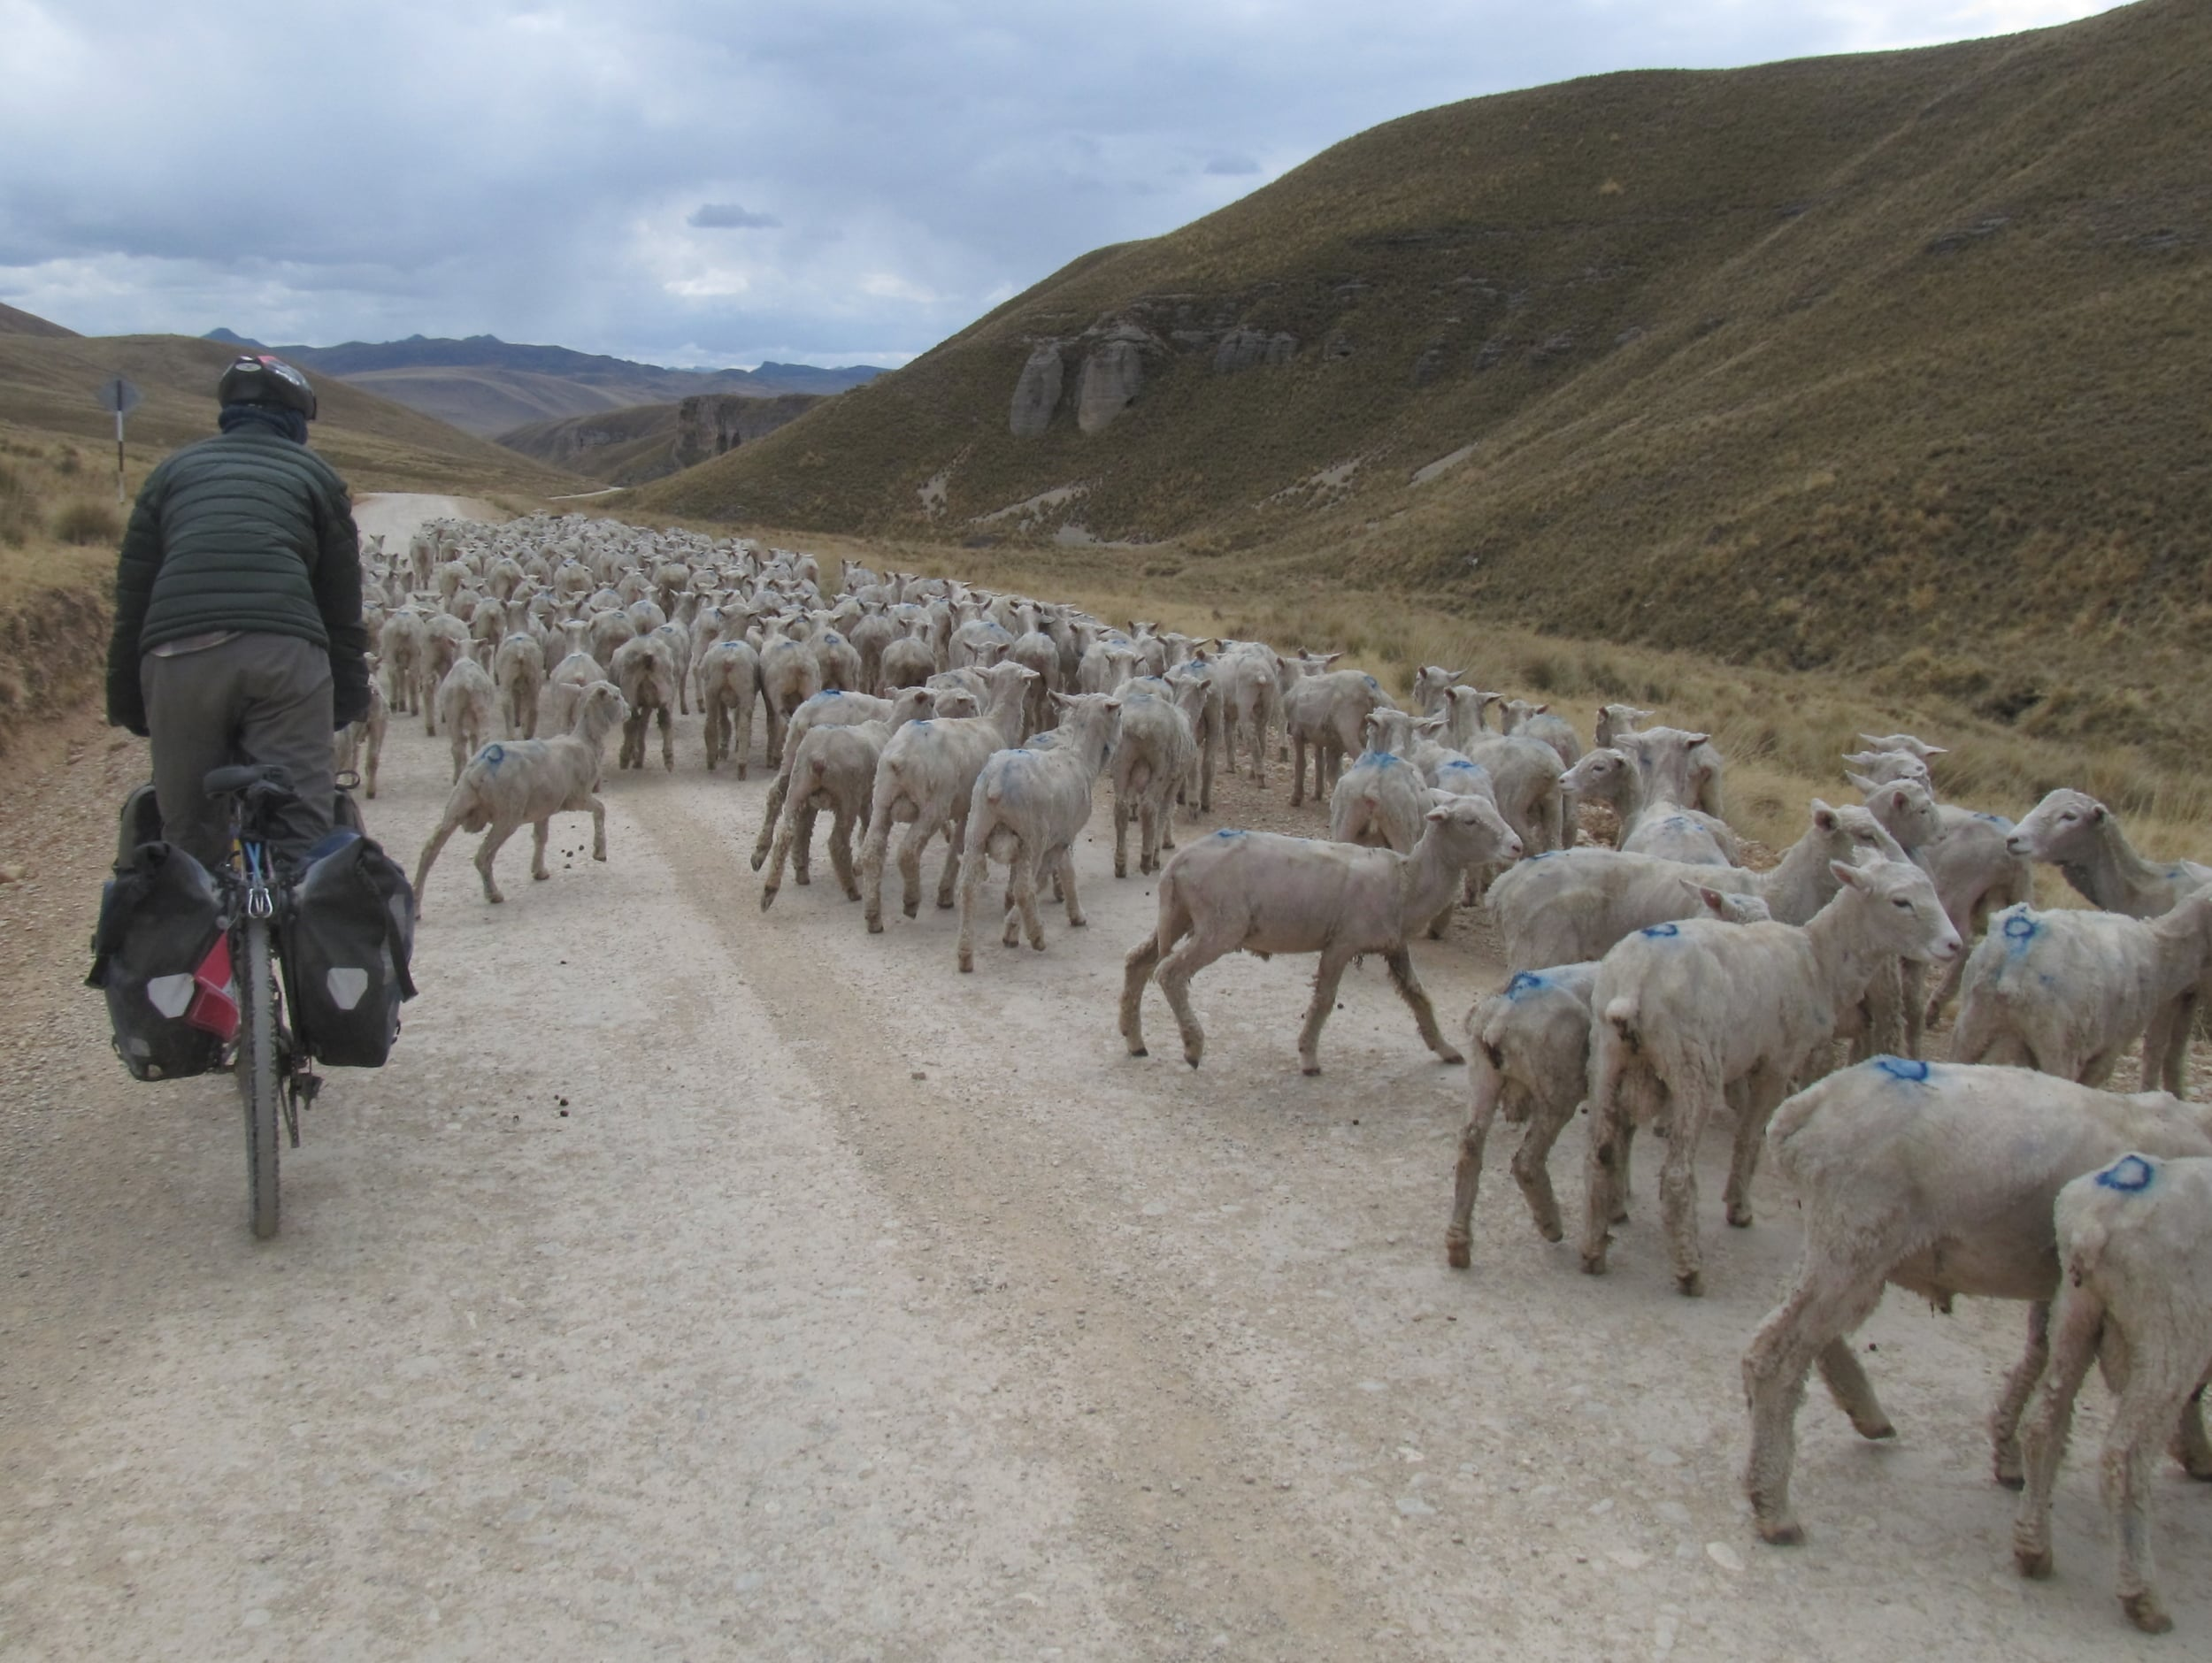 Sheep are one of the few things we are faster than.